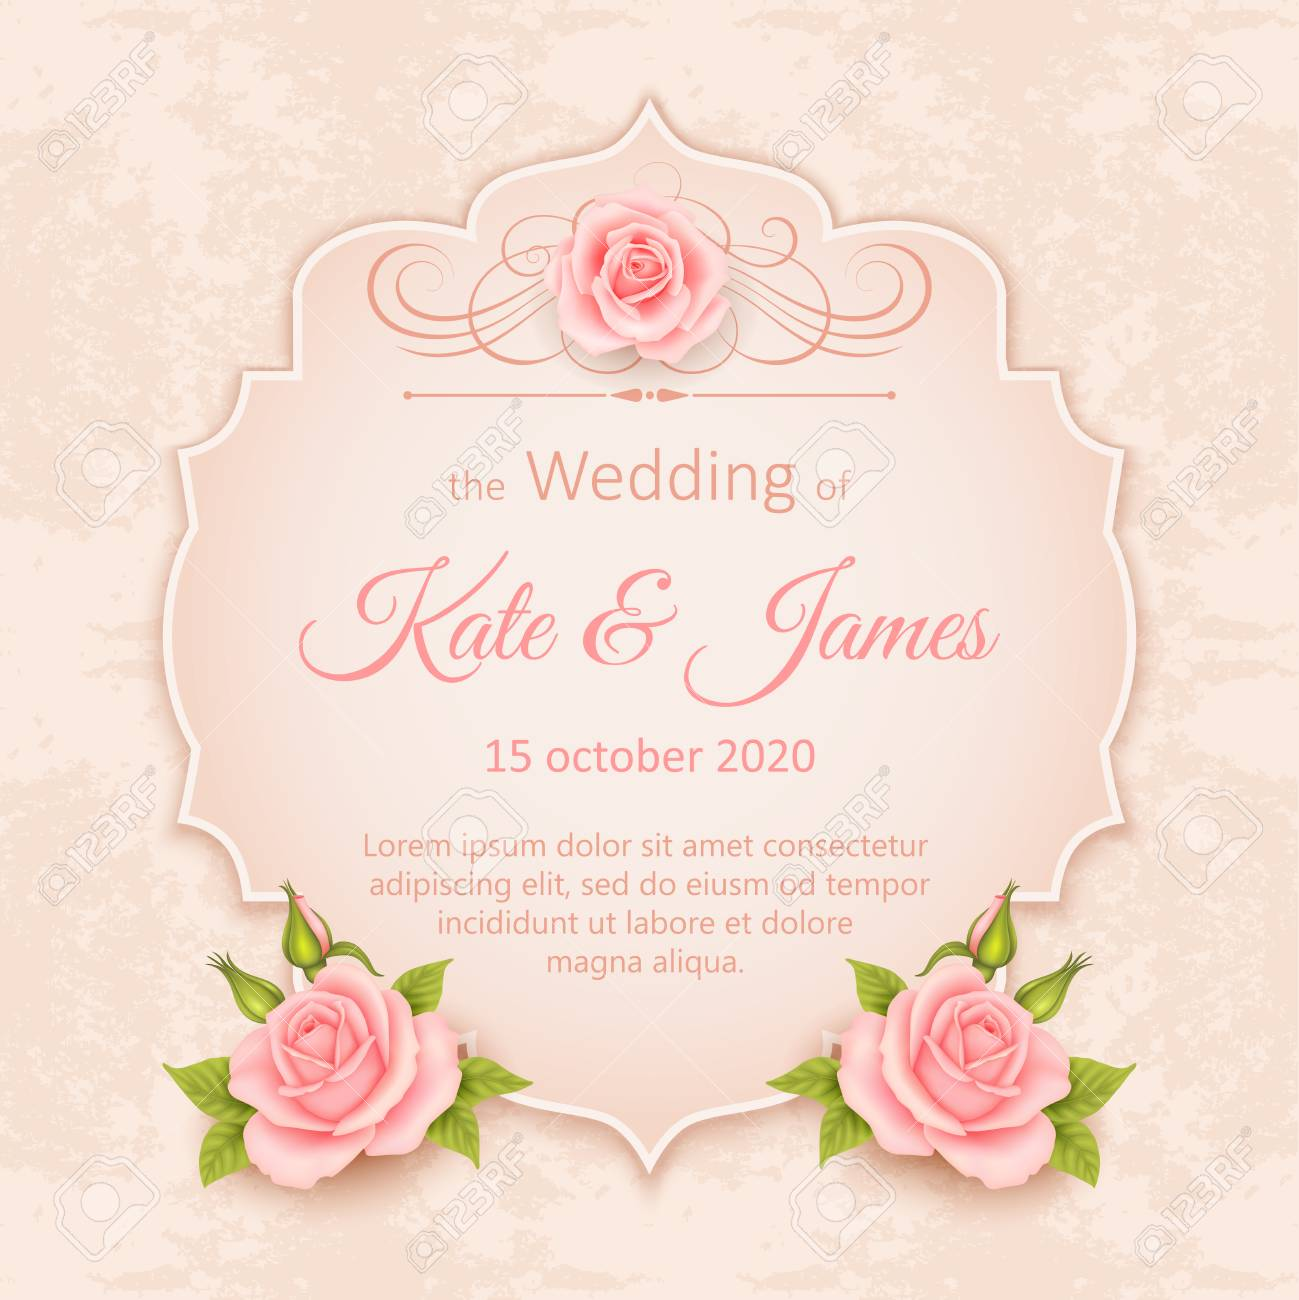 Beautiful Design Wedding Invitation With Roses Vintage